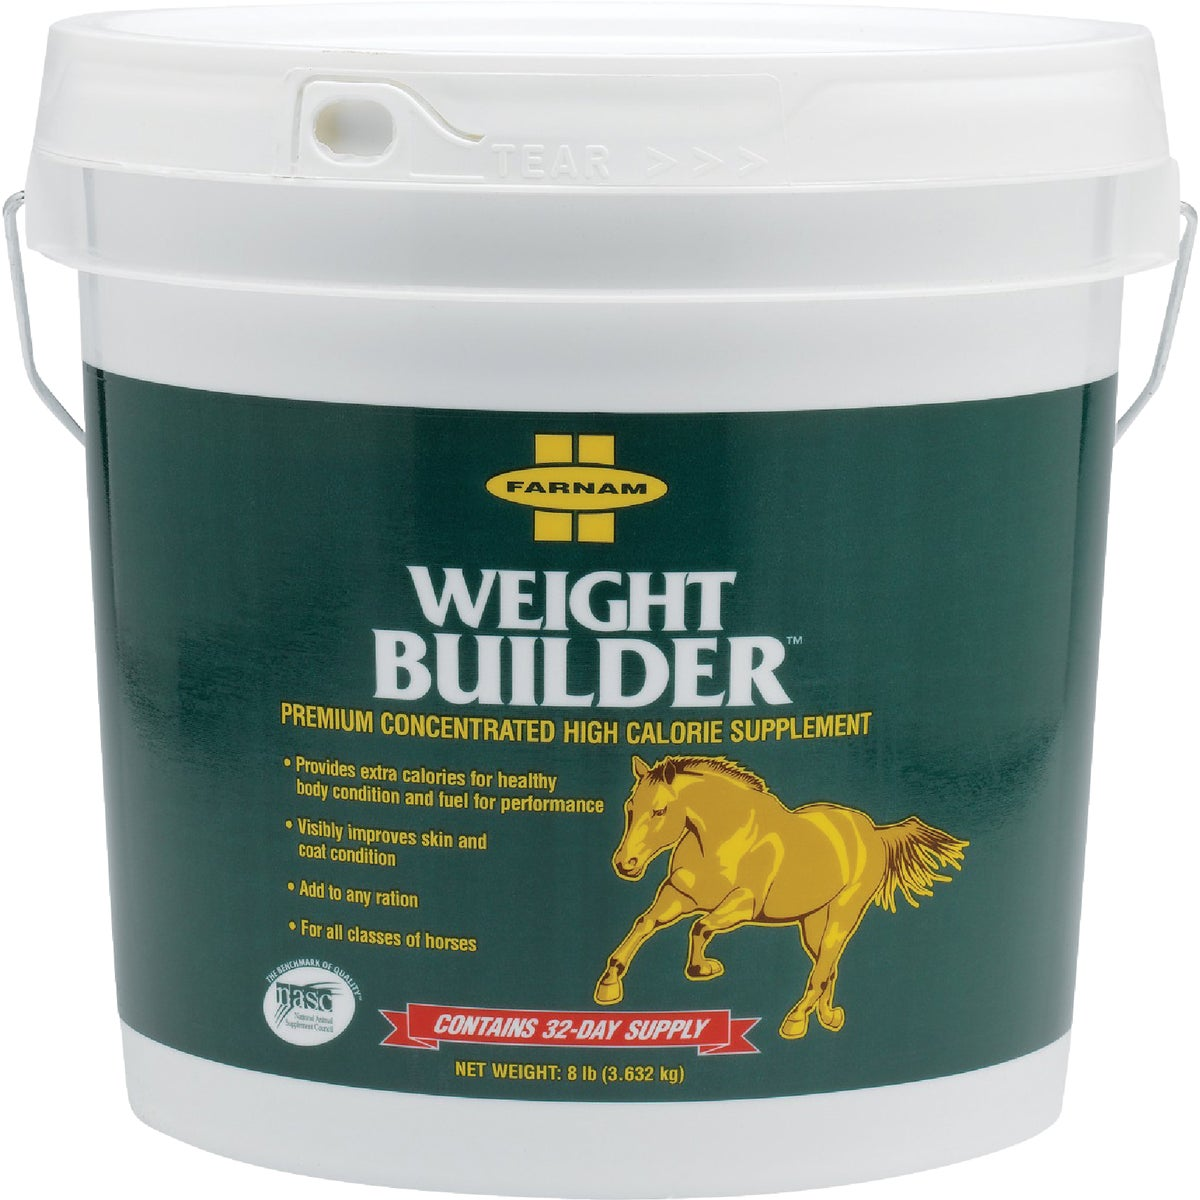 8LB WEIGHT BUILDER